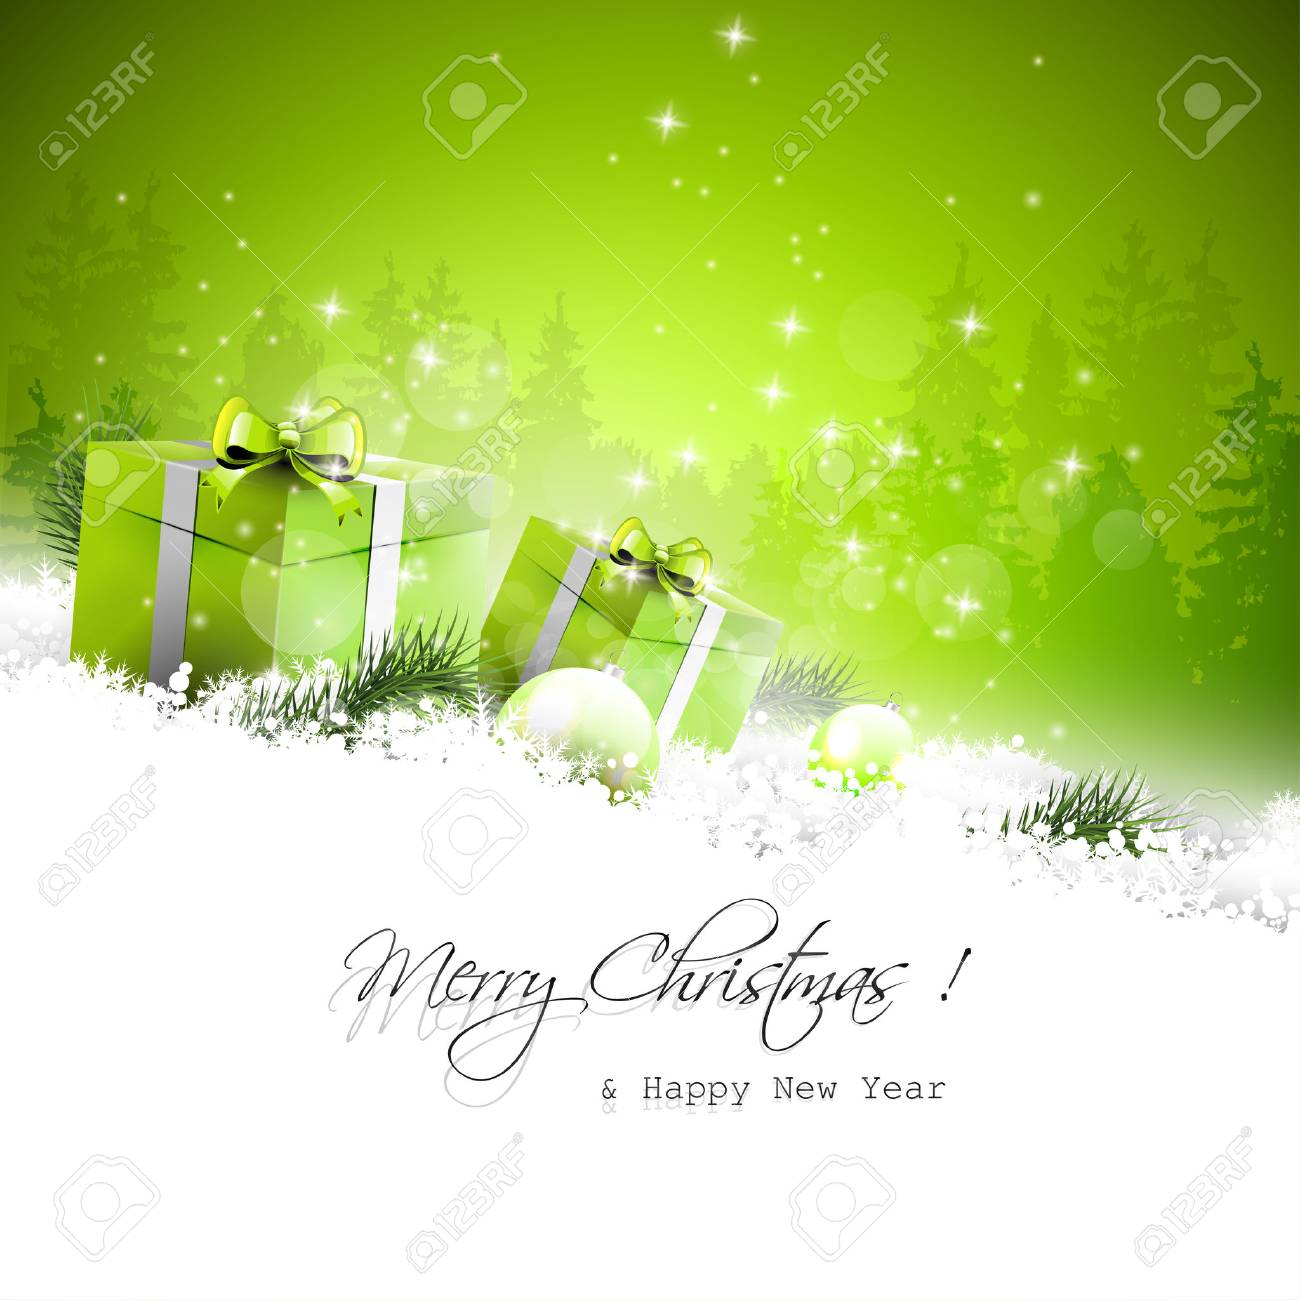 Christmas greeting card with gift boxes and branches in snow Stock Vector - 24250142